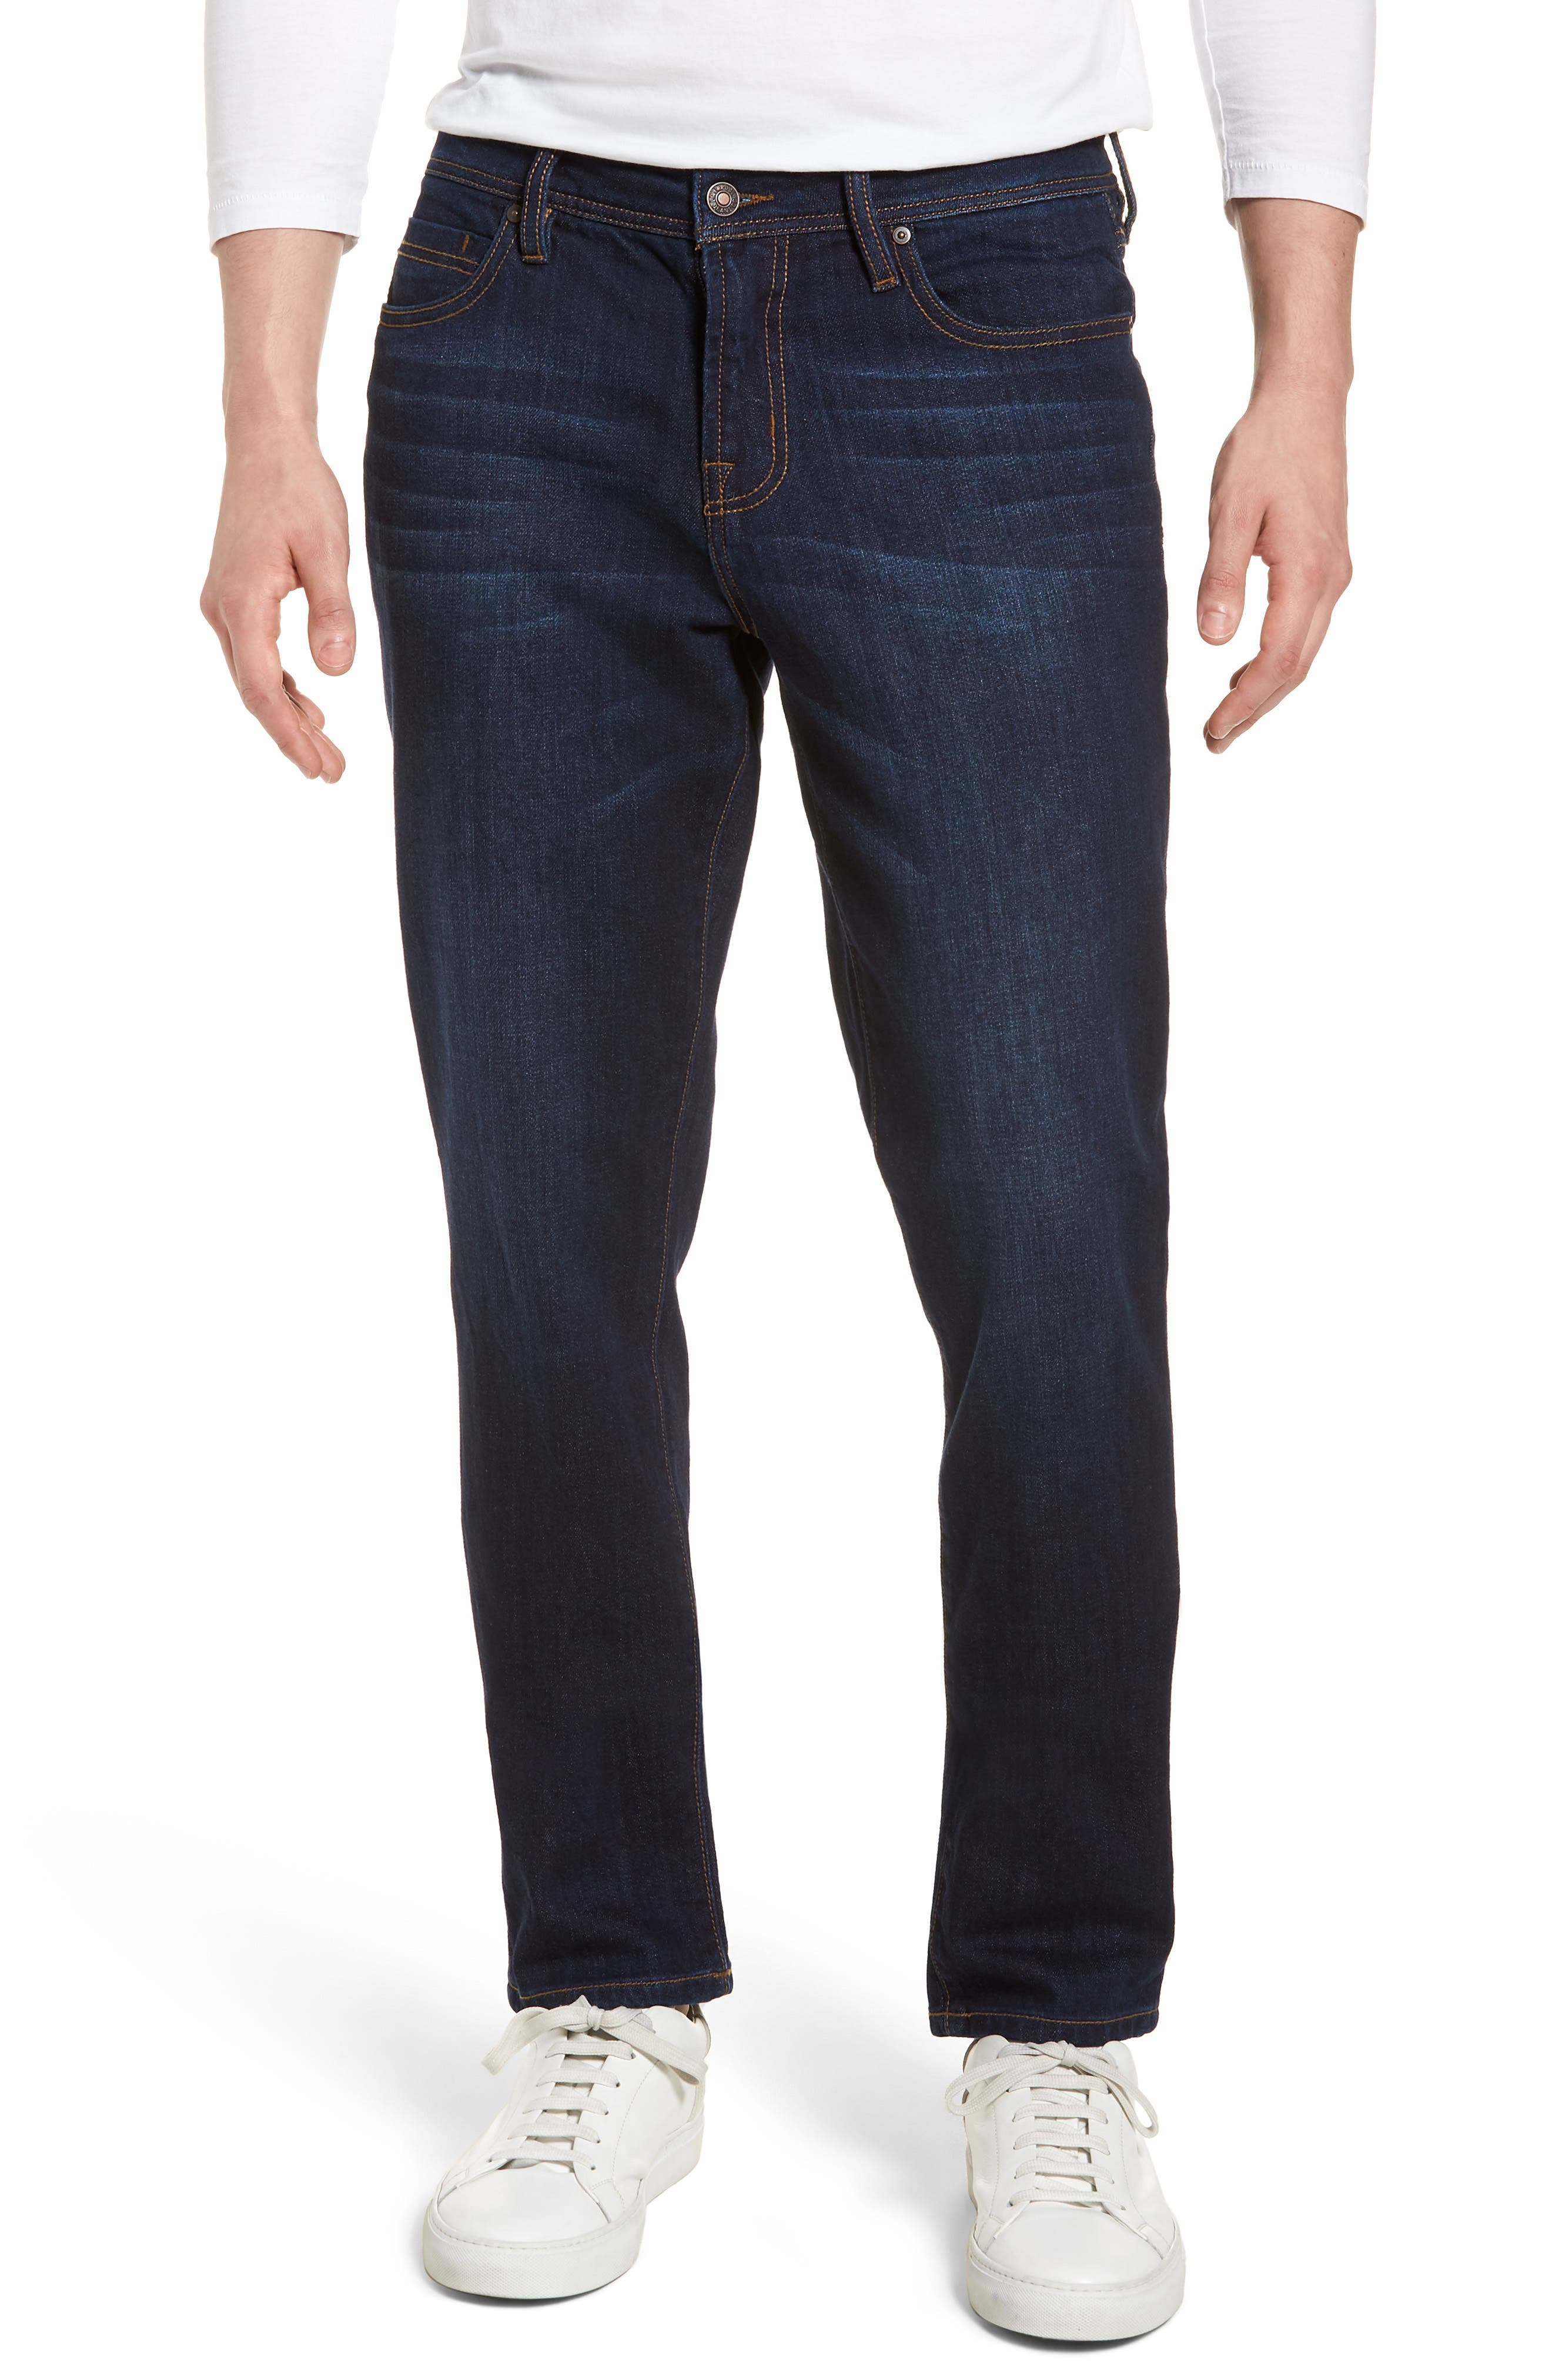 Jeans Co. Kingston Slim Straight Leg Jeans,                             Main thumbnail 1, color,                             San Ardo Vintage Dark